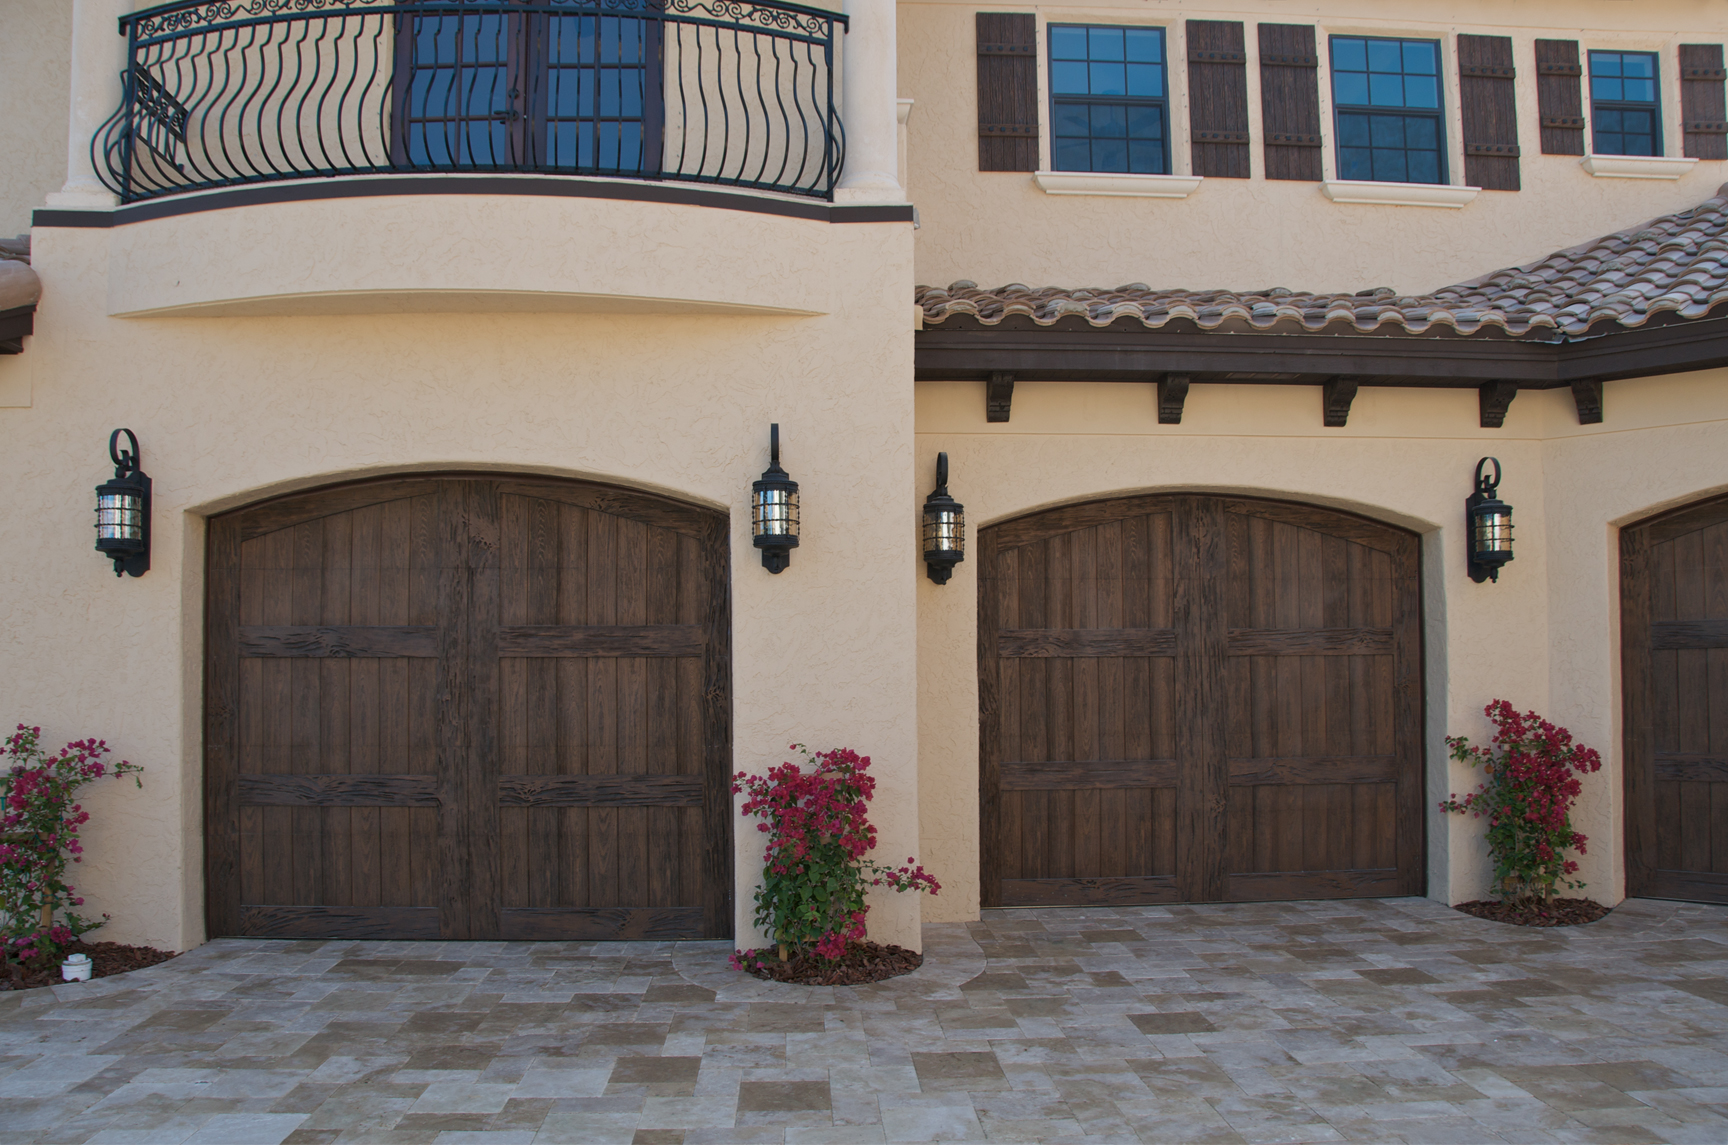 Doors To Garage: Faux Wood Garage Door Sales And Installation In Englewood